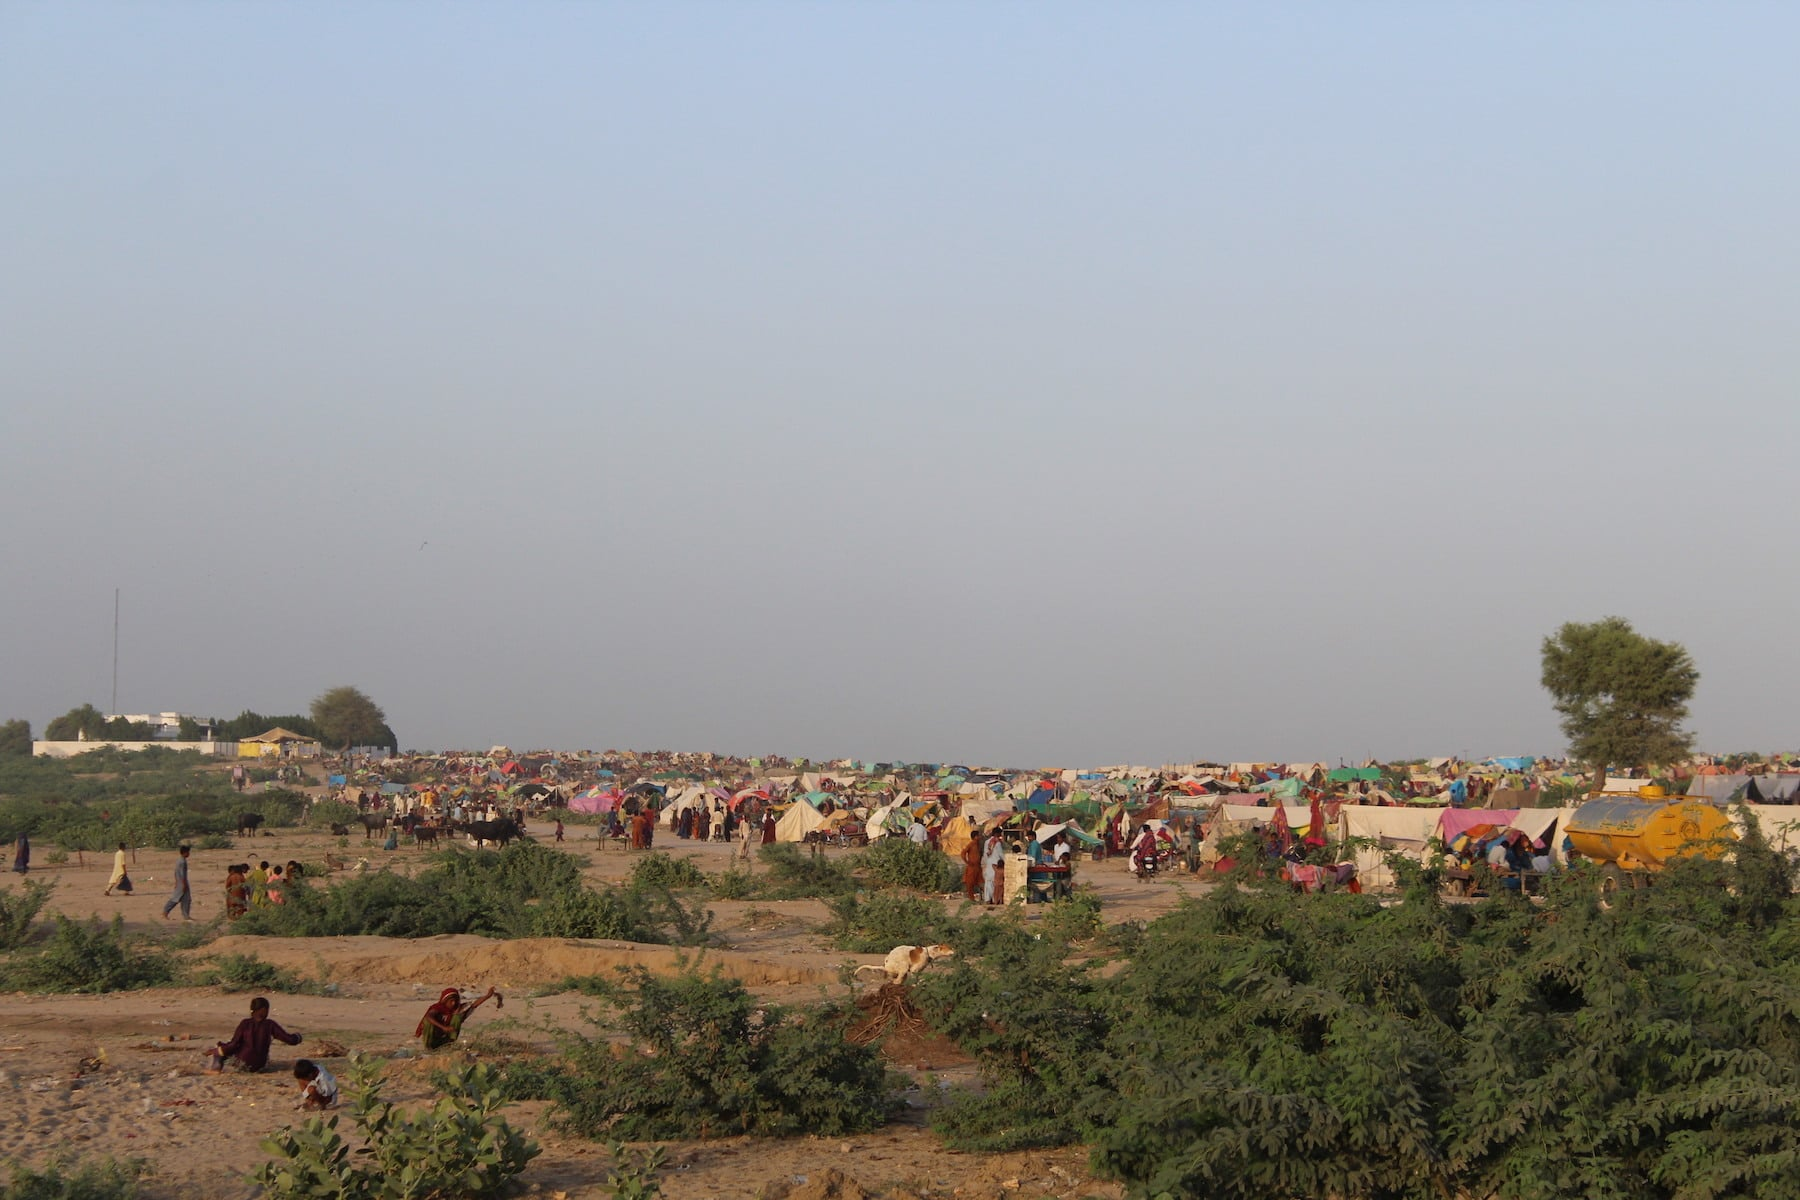 Another view of the tent city set up in Umerkot district by the Sindh government. Officials say they lack the resources to provide relief facilities to the vast majority but are trying their best. Affectees say it is not even scratching the surface. — Photo by author